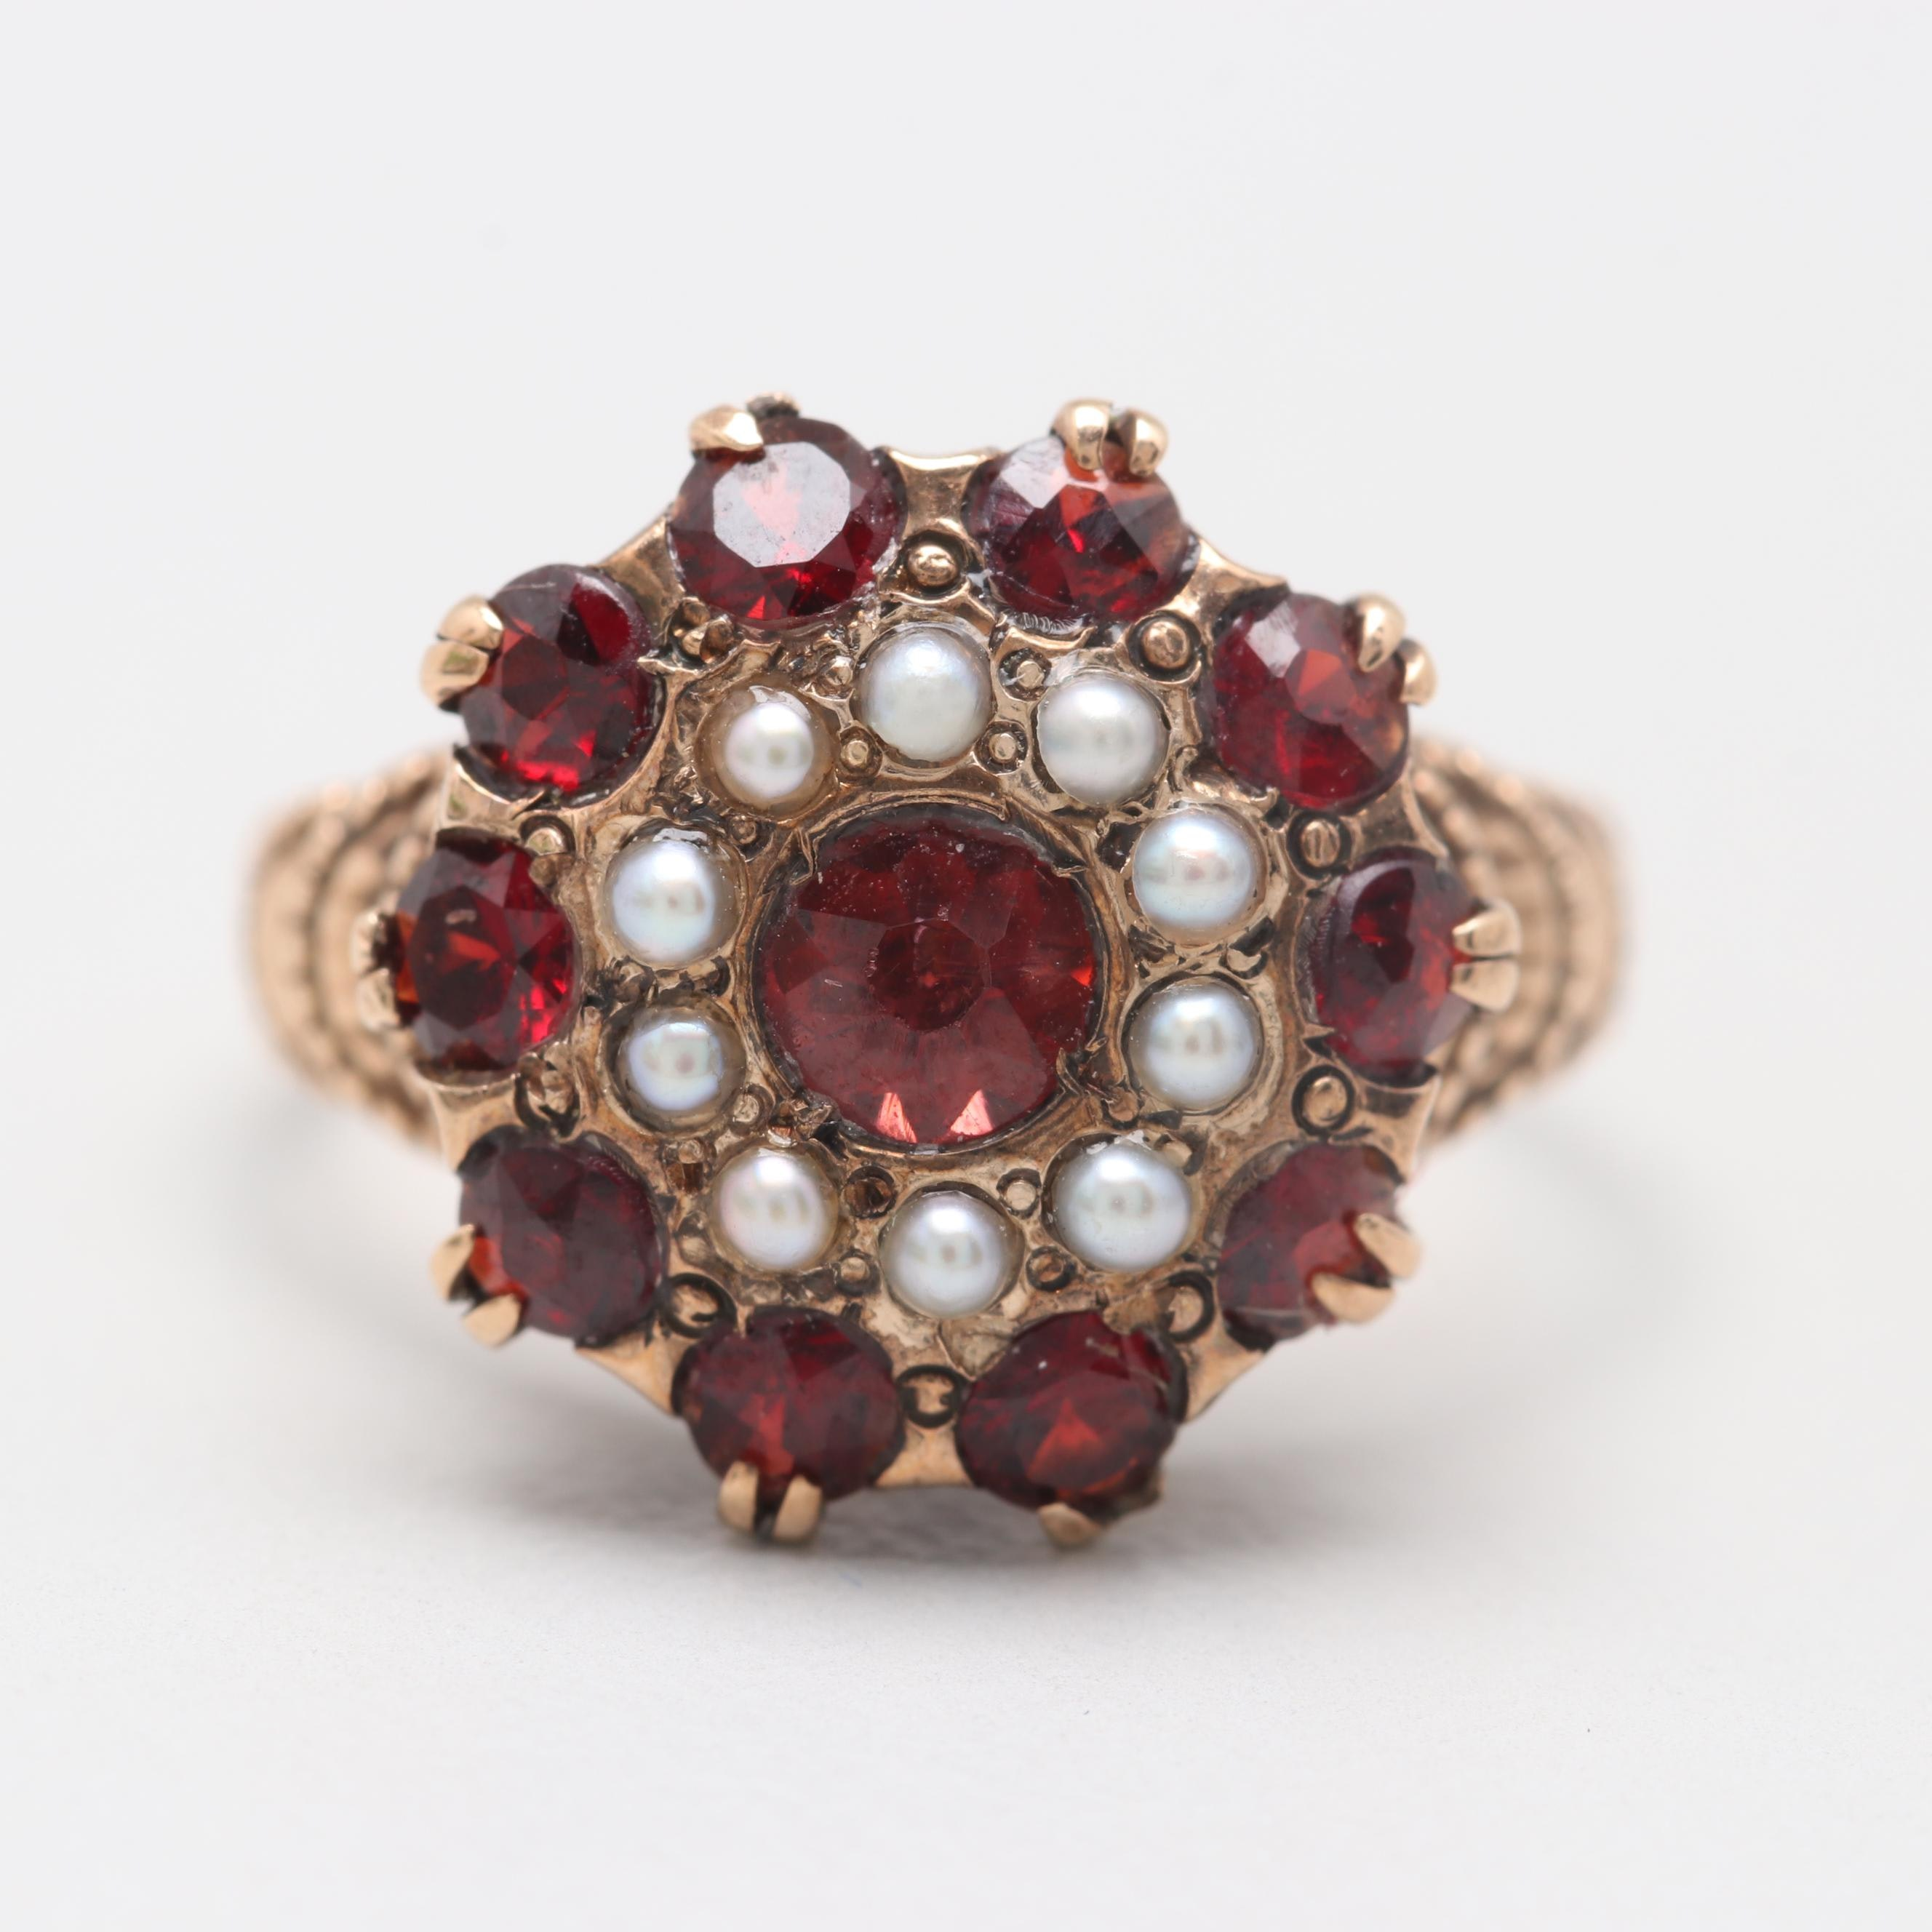 Victorian 10K Yellow Gold Garnet and Cultured Pearl Ring